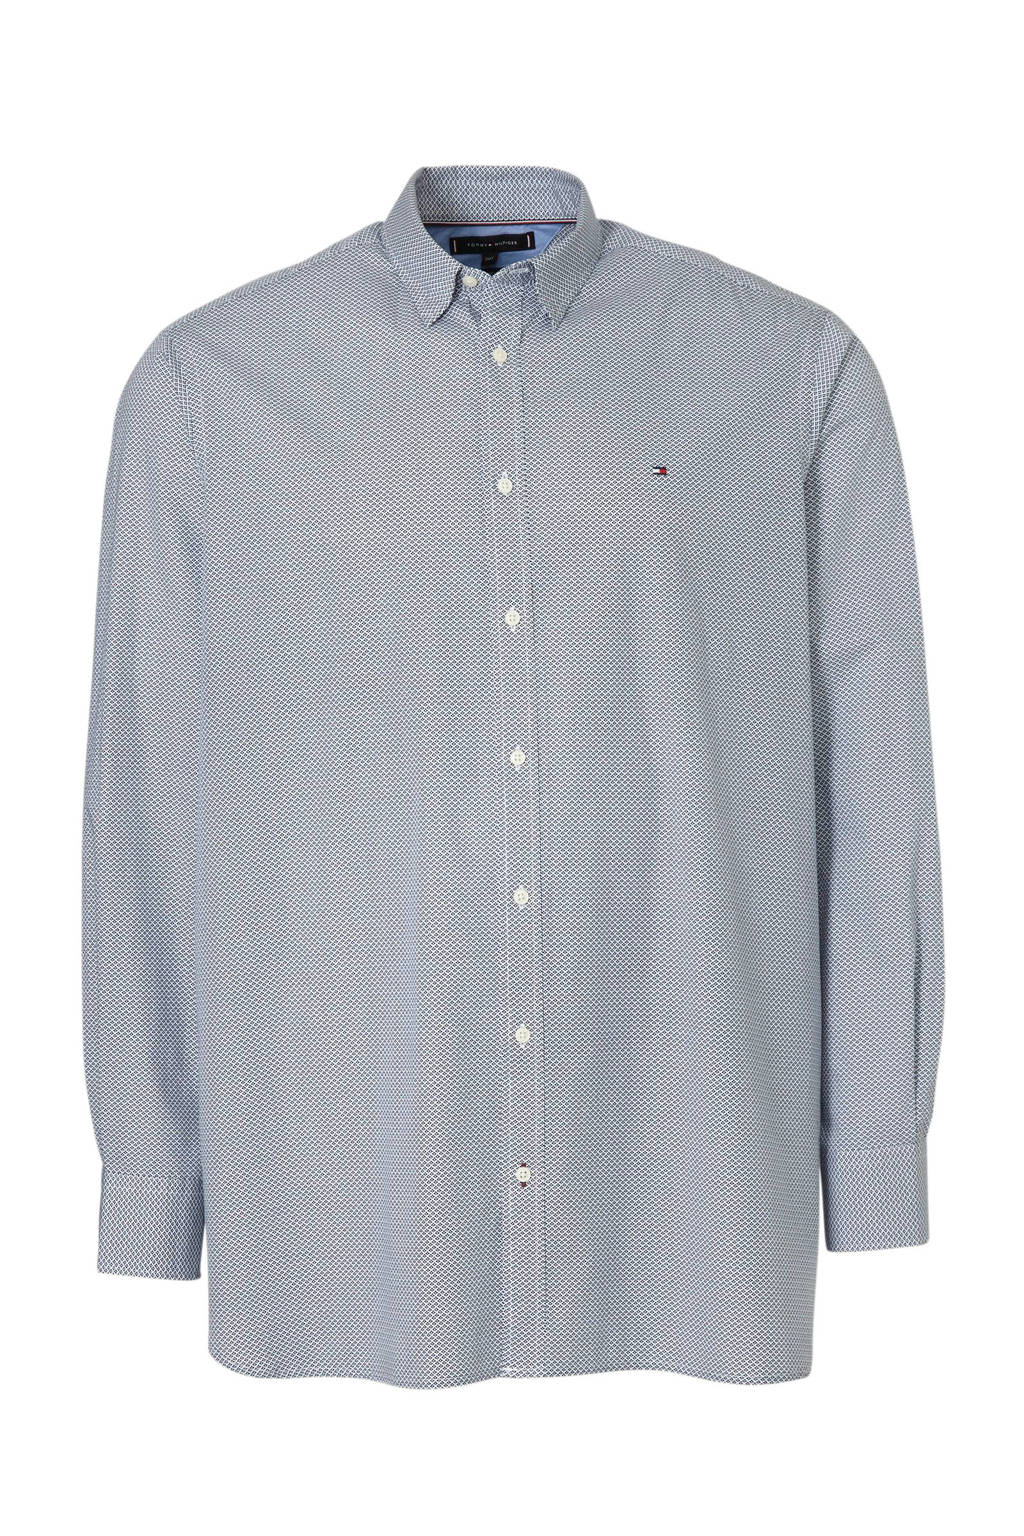 Tommy Hilfiger Big & Tall +size slim fit overhemd met all over print wit/blauw, Wit/blauw